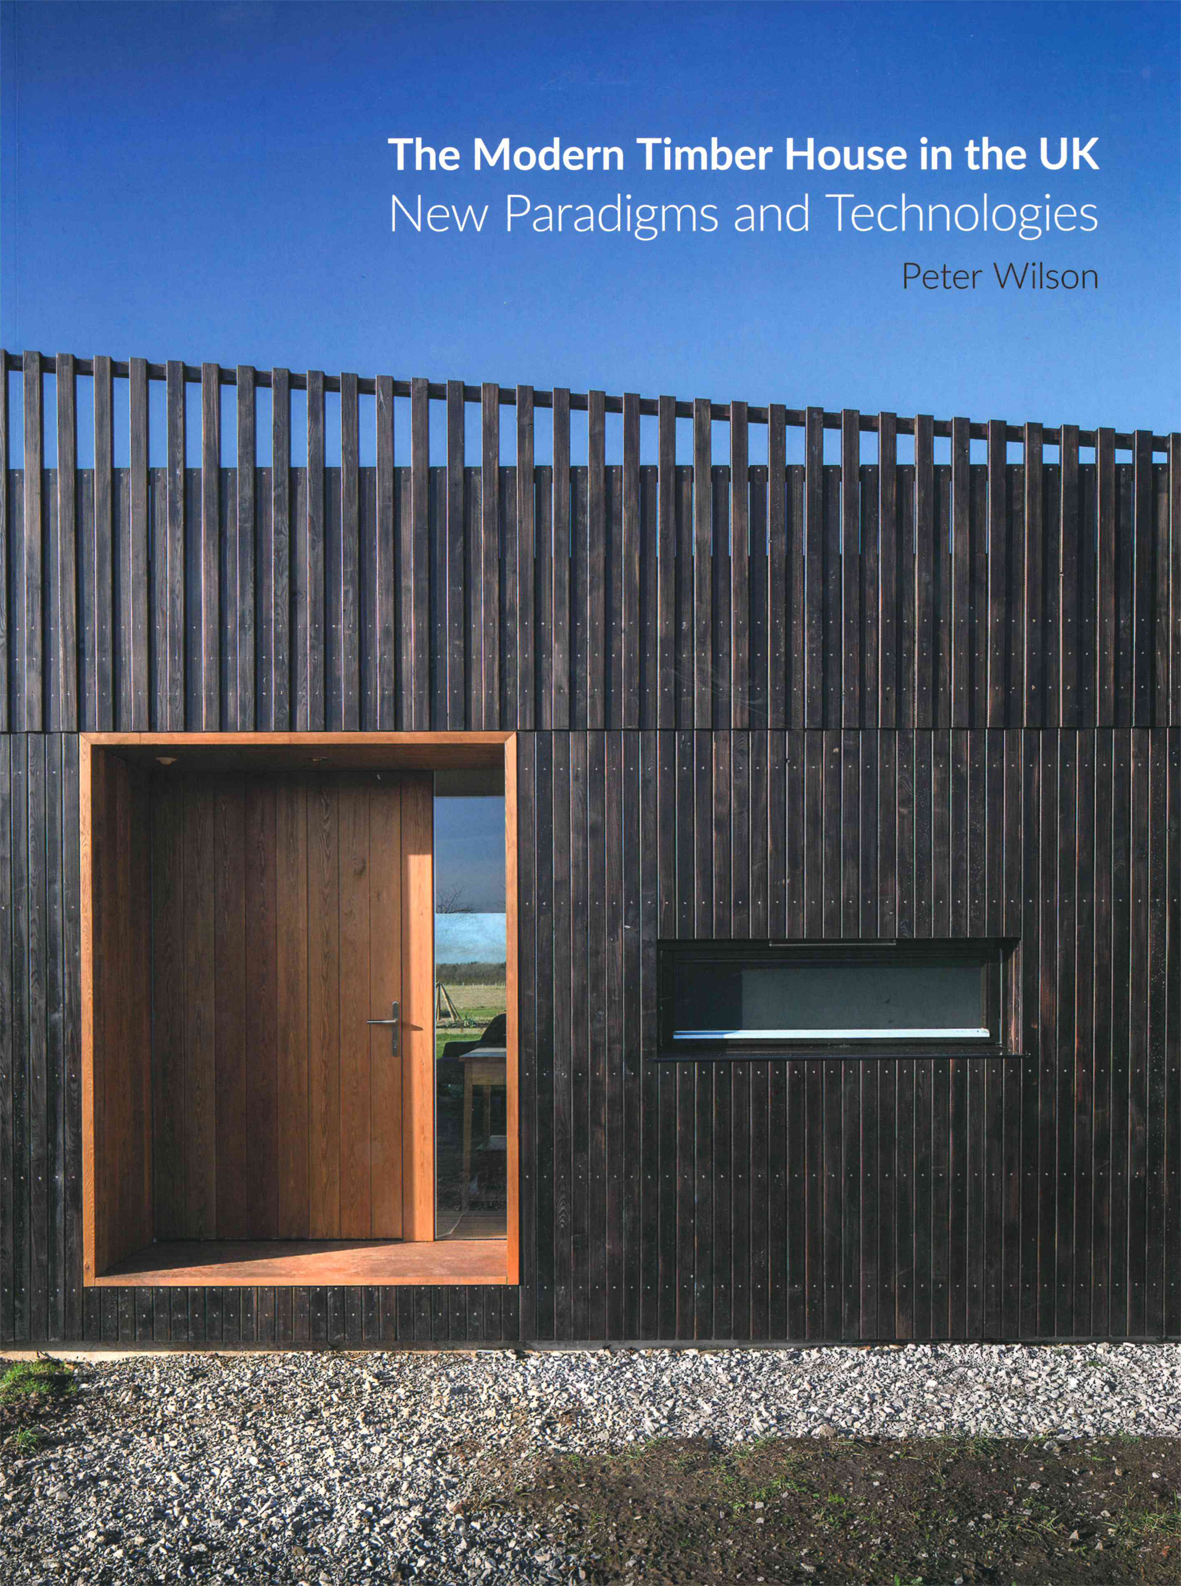 The Modern Timber House in the UK